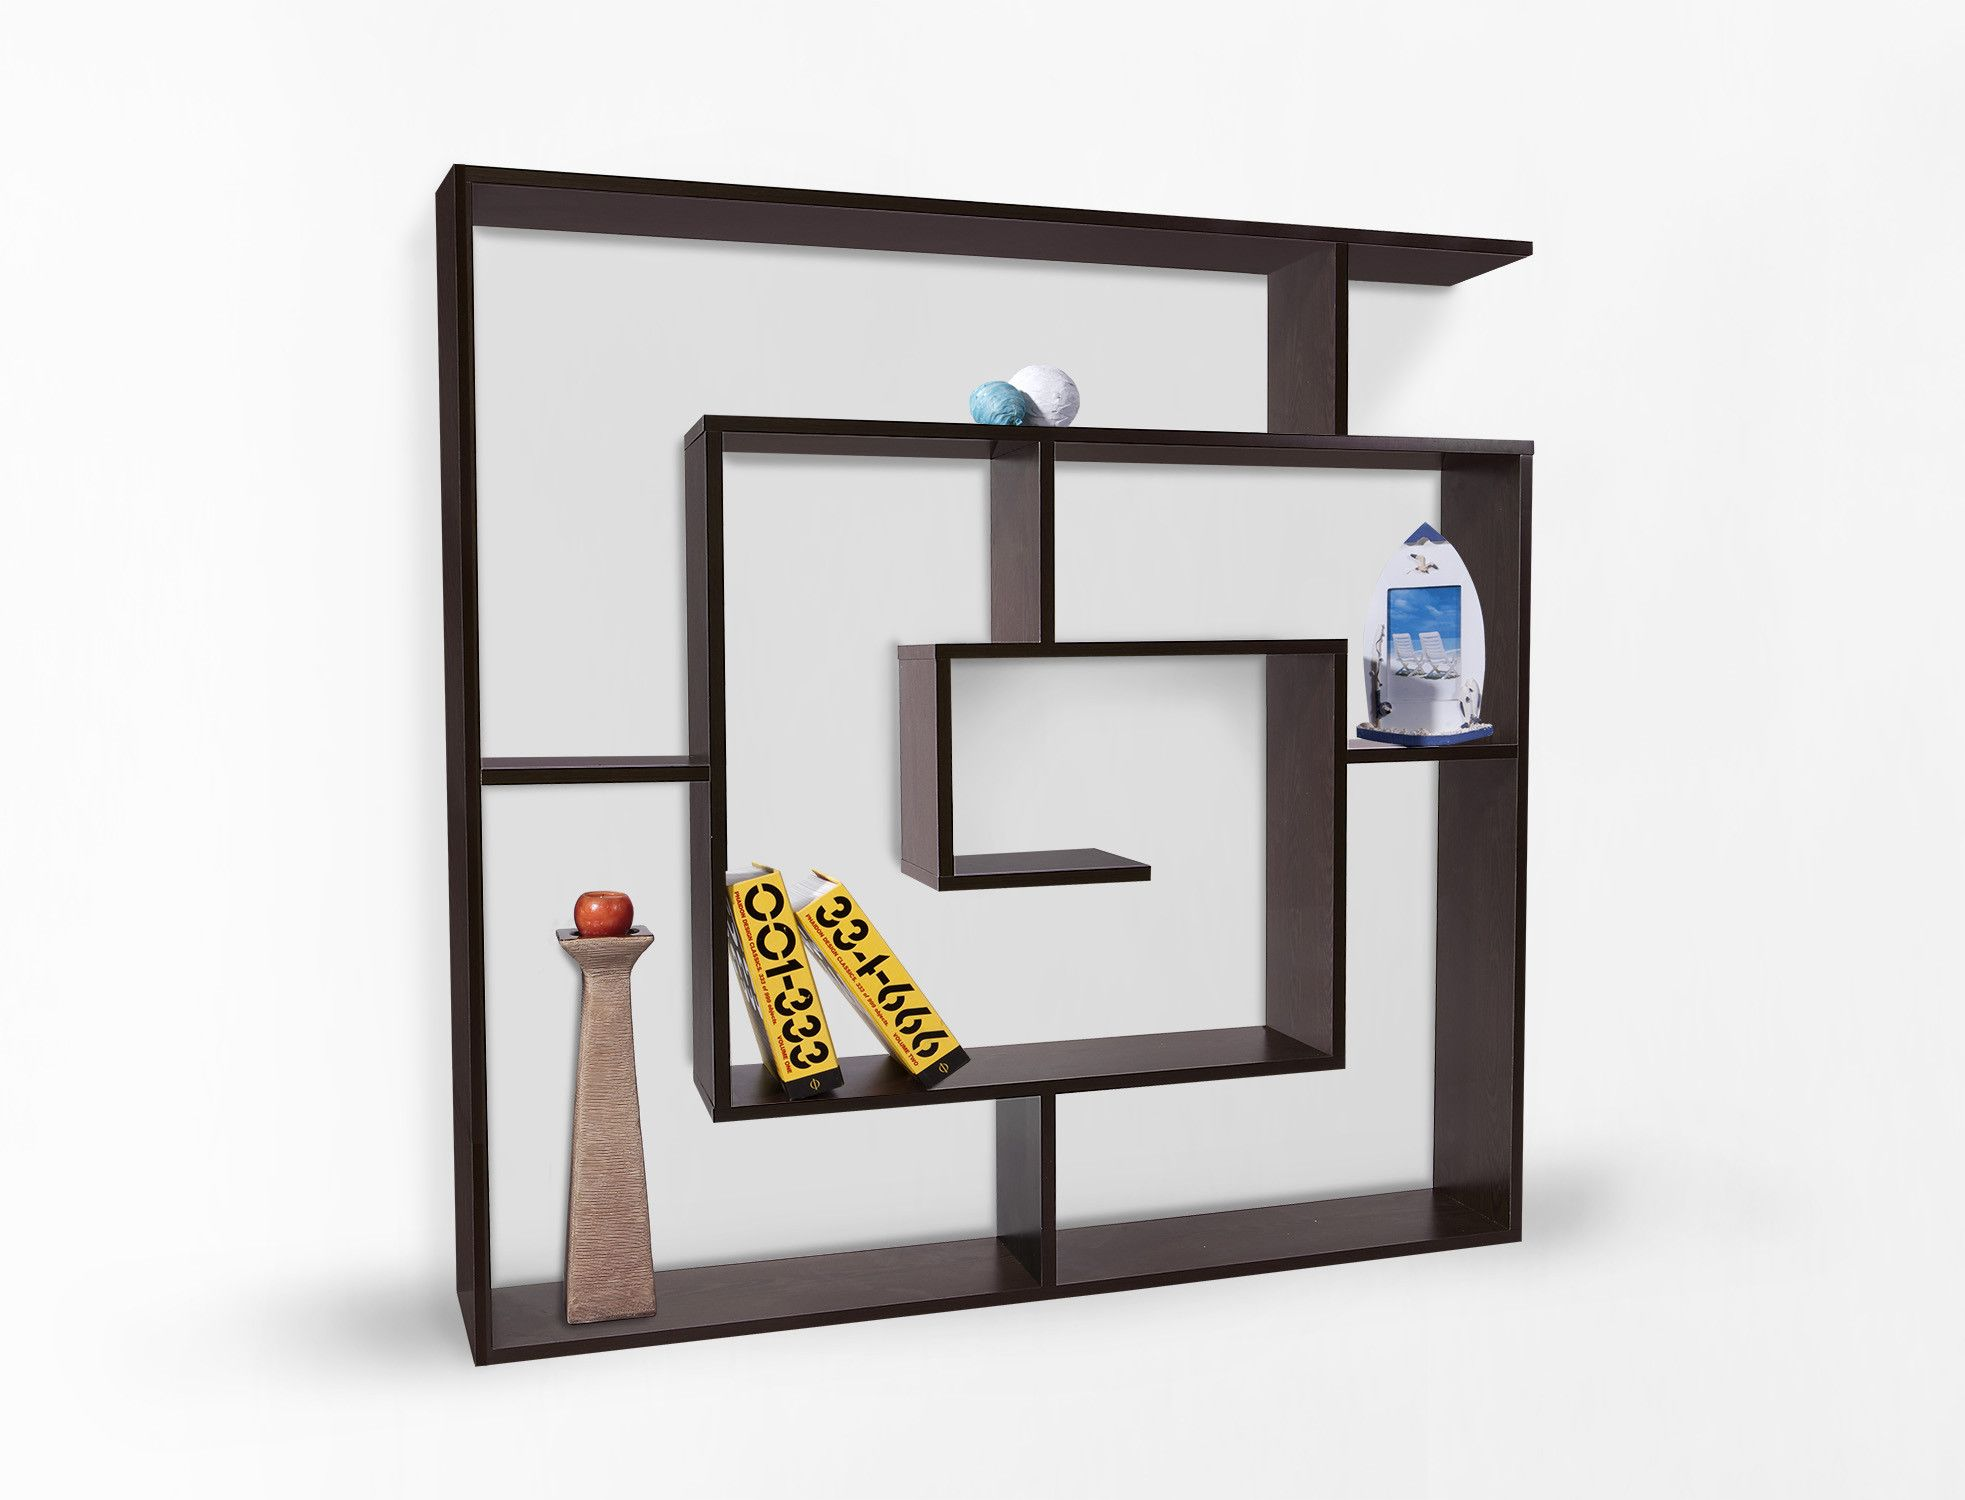 buy labyrinth bookcase at modern furniture deals for only £  - buy labyrinth bookcase at modern furniture deals for only £